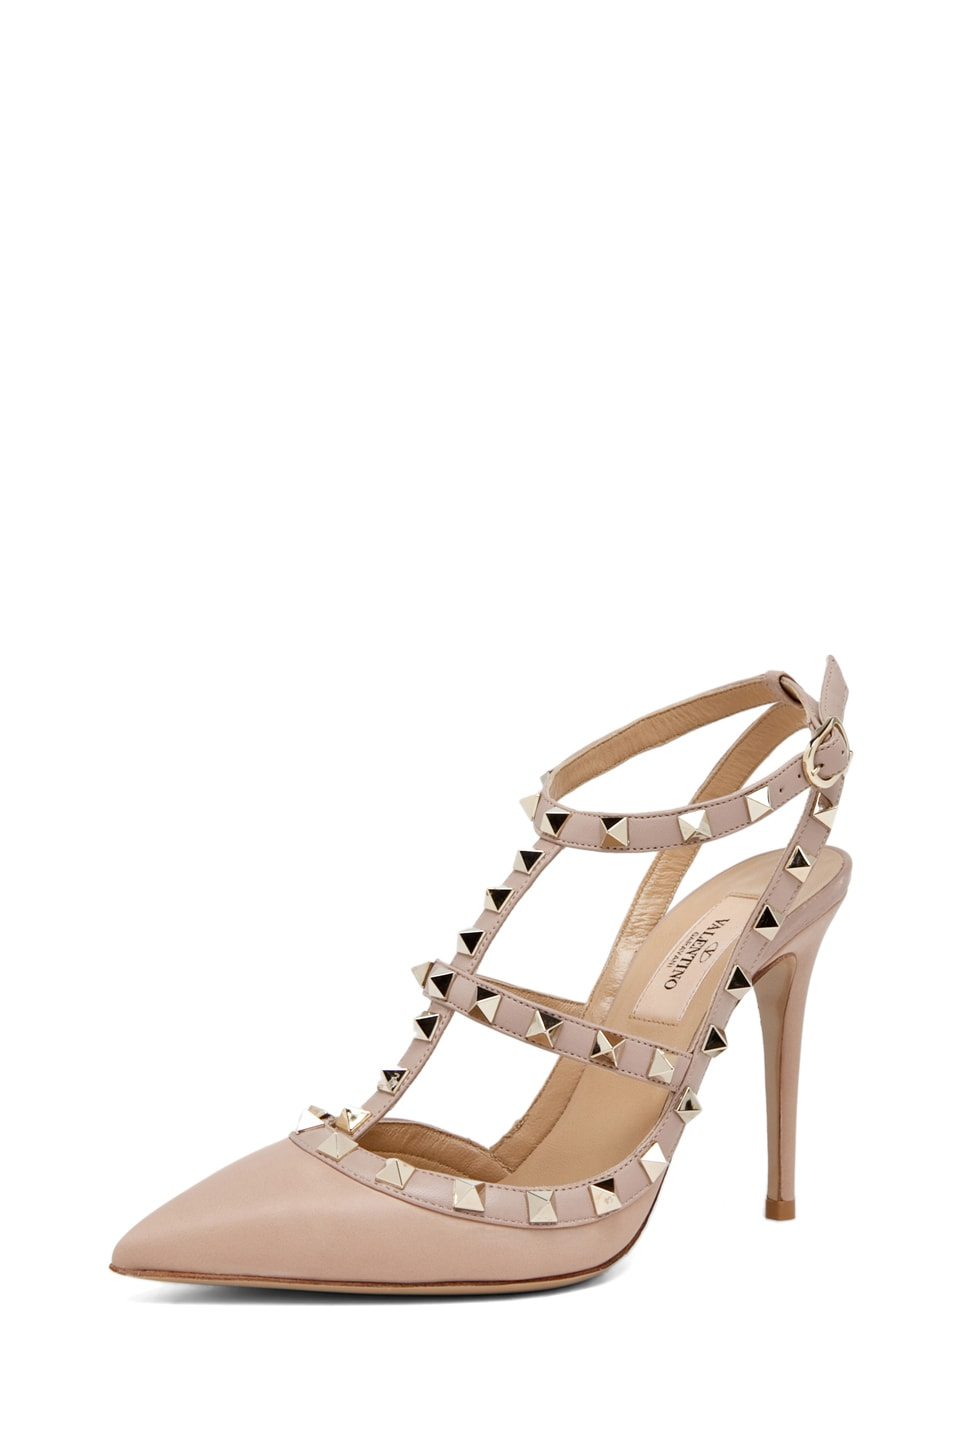 Image 2 of Valentino Rockstud Leather Slingbacks T.100 in Powder